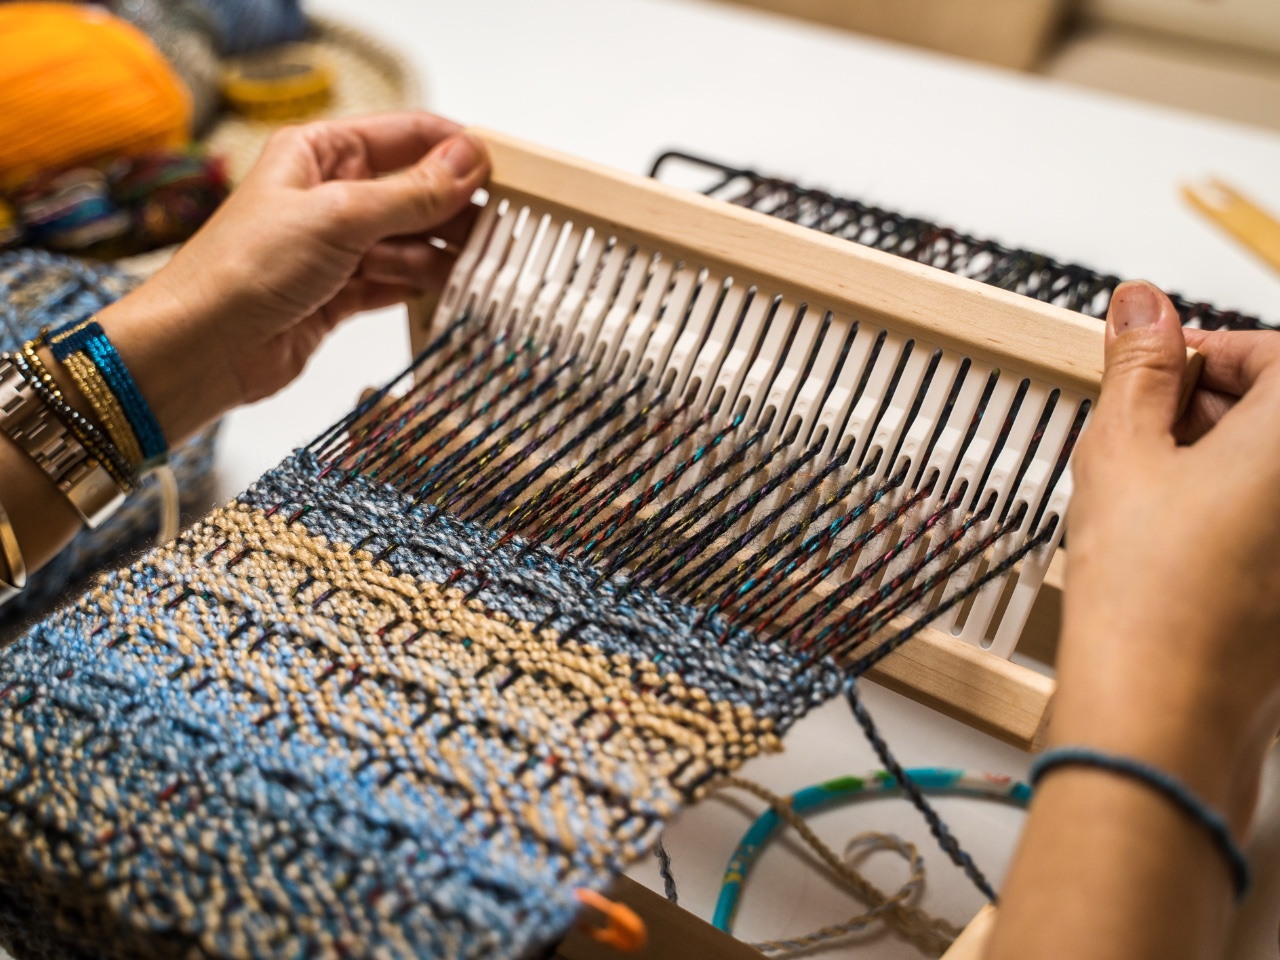 weaving workshop beginners crete, weaving workshop rethimno, rethymno weaving workshop, klotho weaving workshop rethymno crete, long-lived art of weaving, contemporary design weaving, activities rethimno crete, best activity rethymno crete